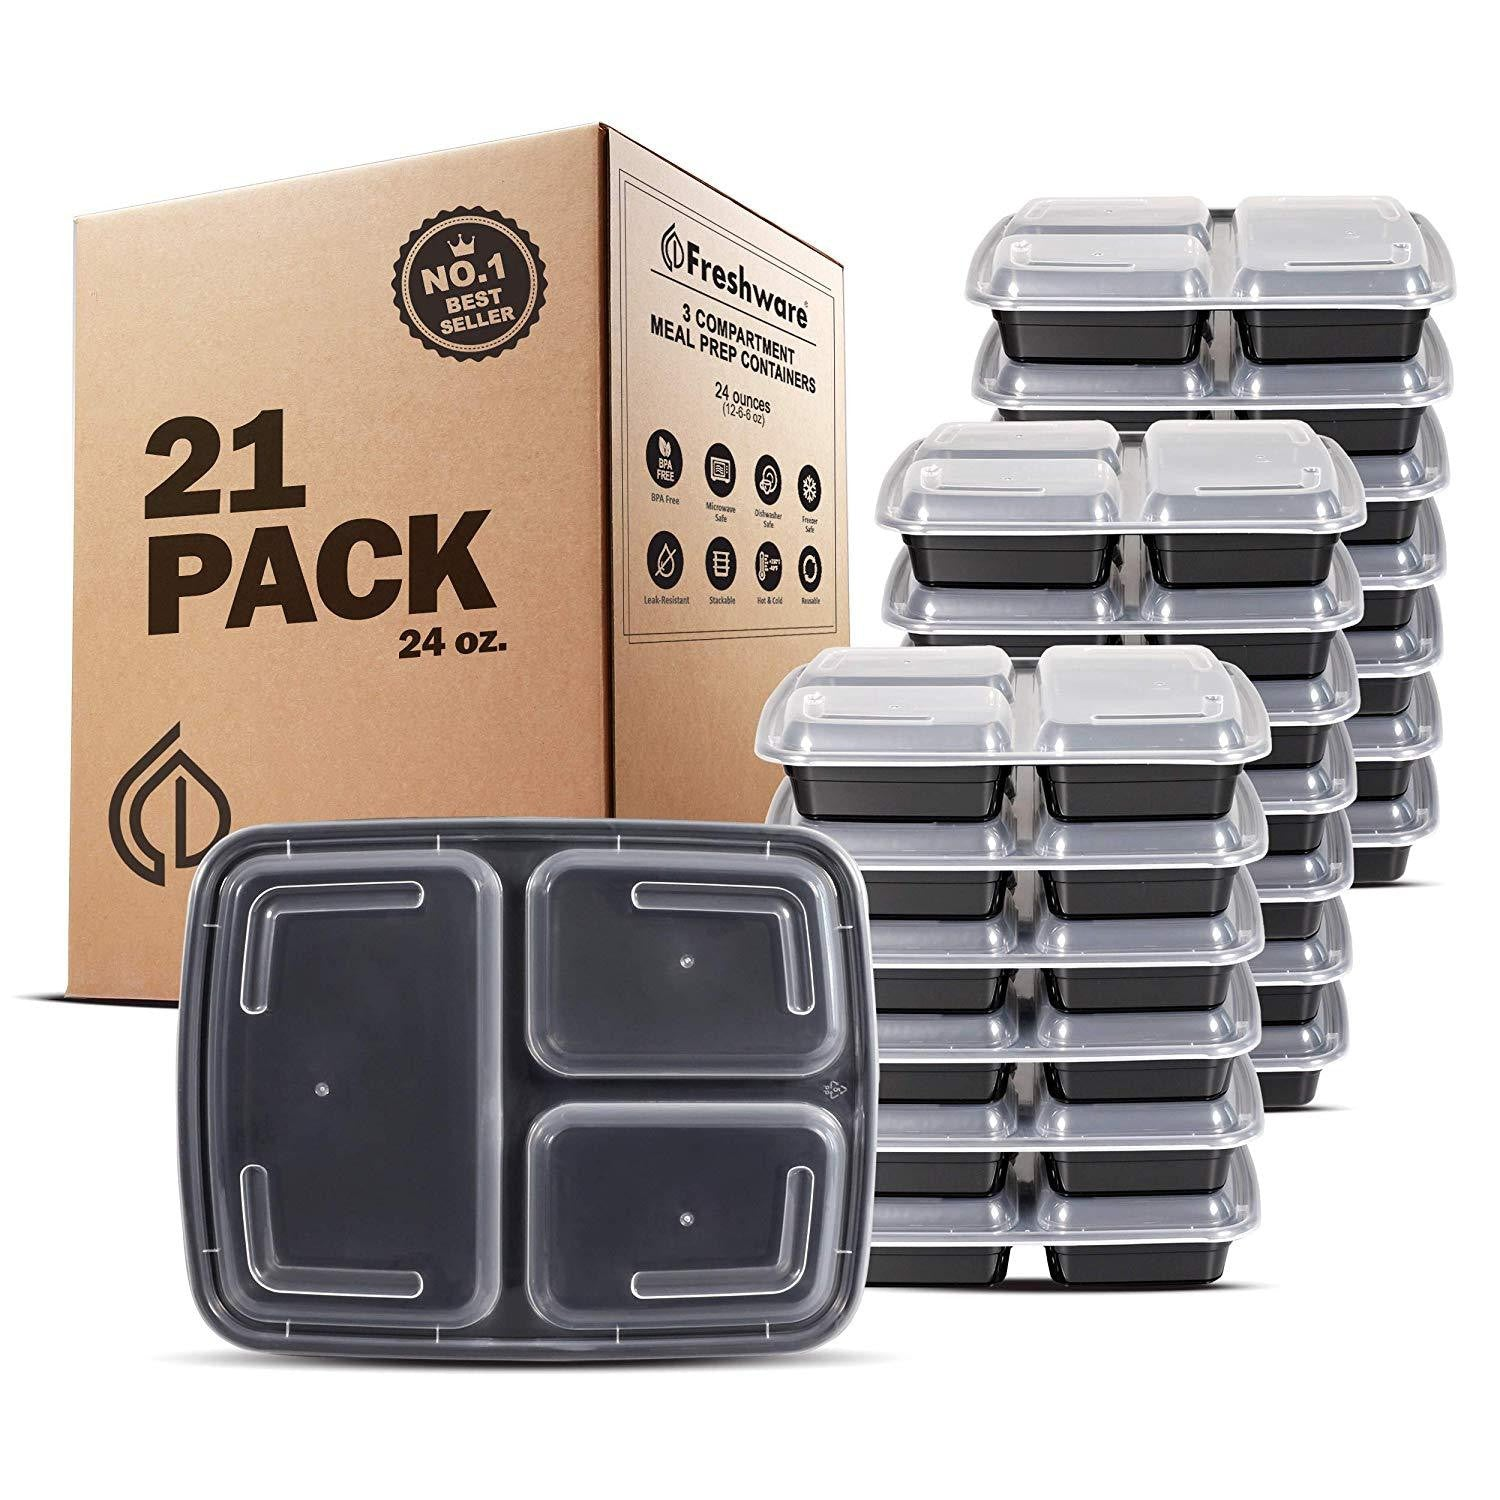 Freshware Meal Prep Containers [21 Pack] 3 Compartment with Lids - Prep it